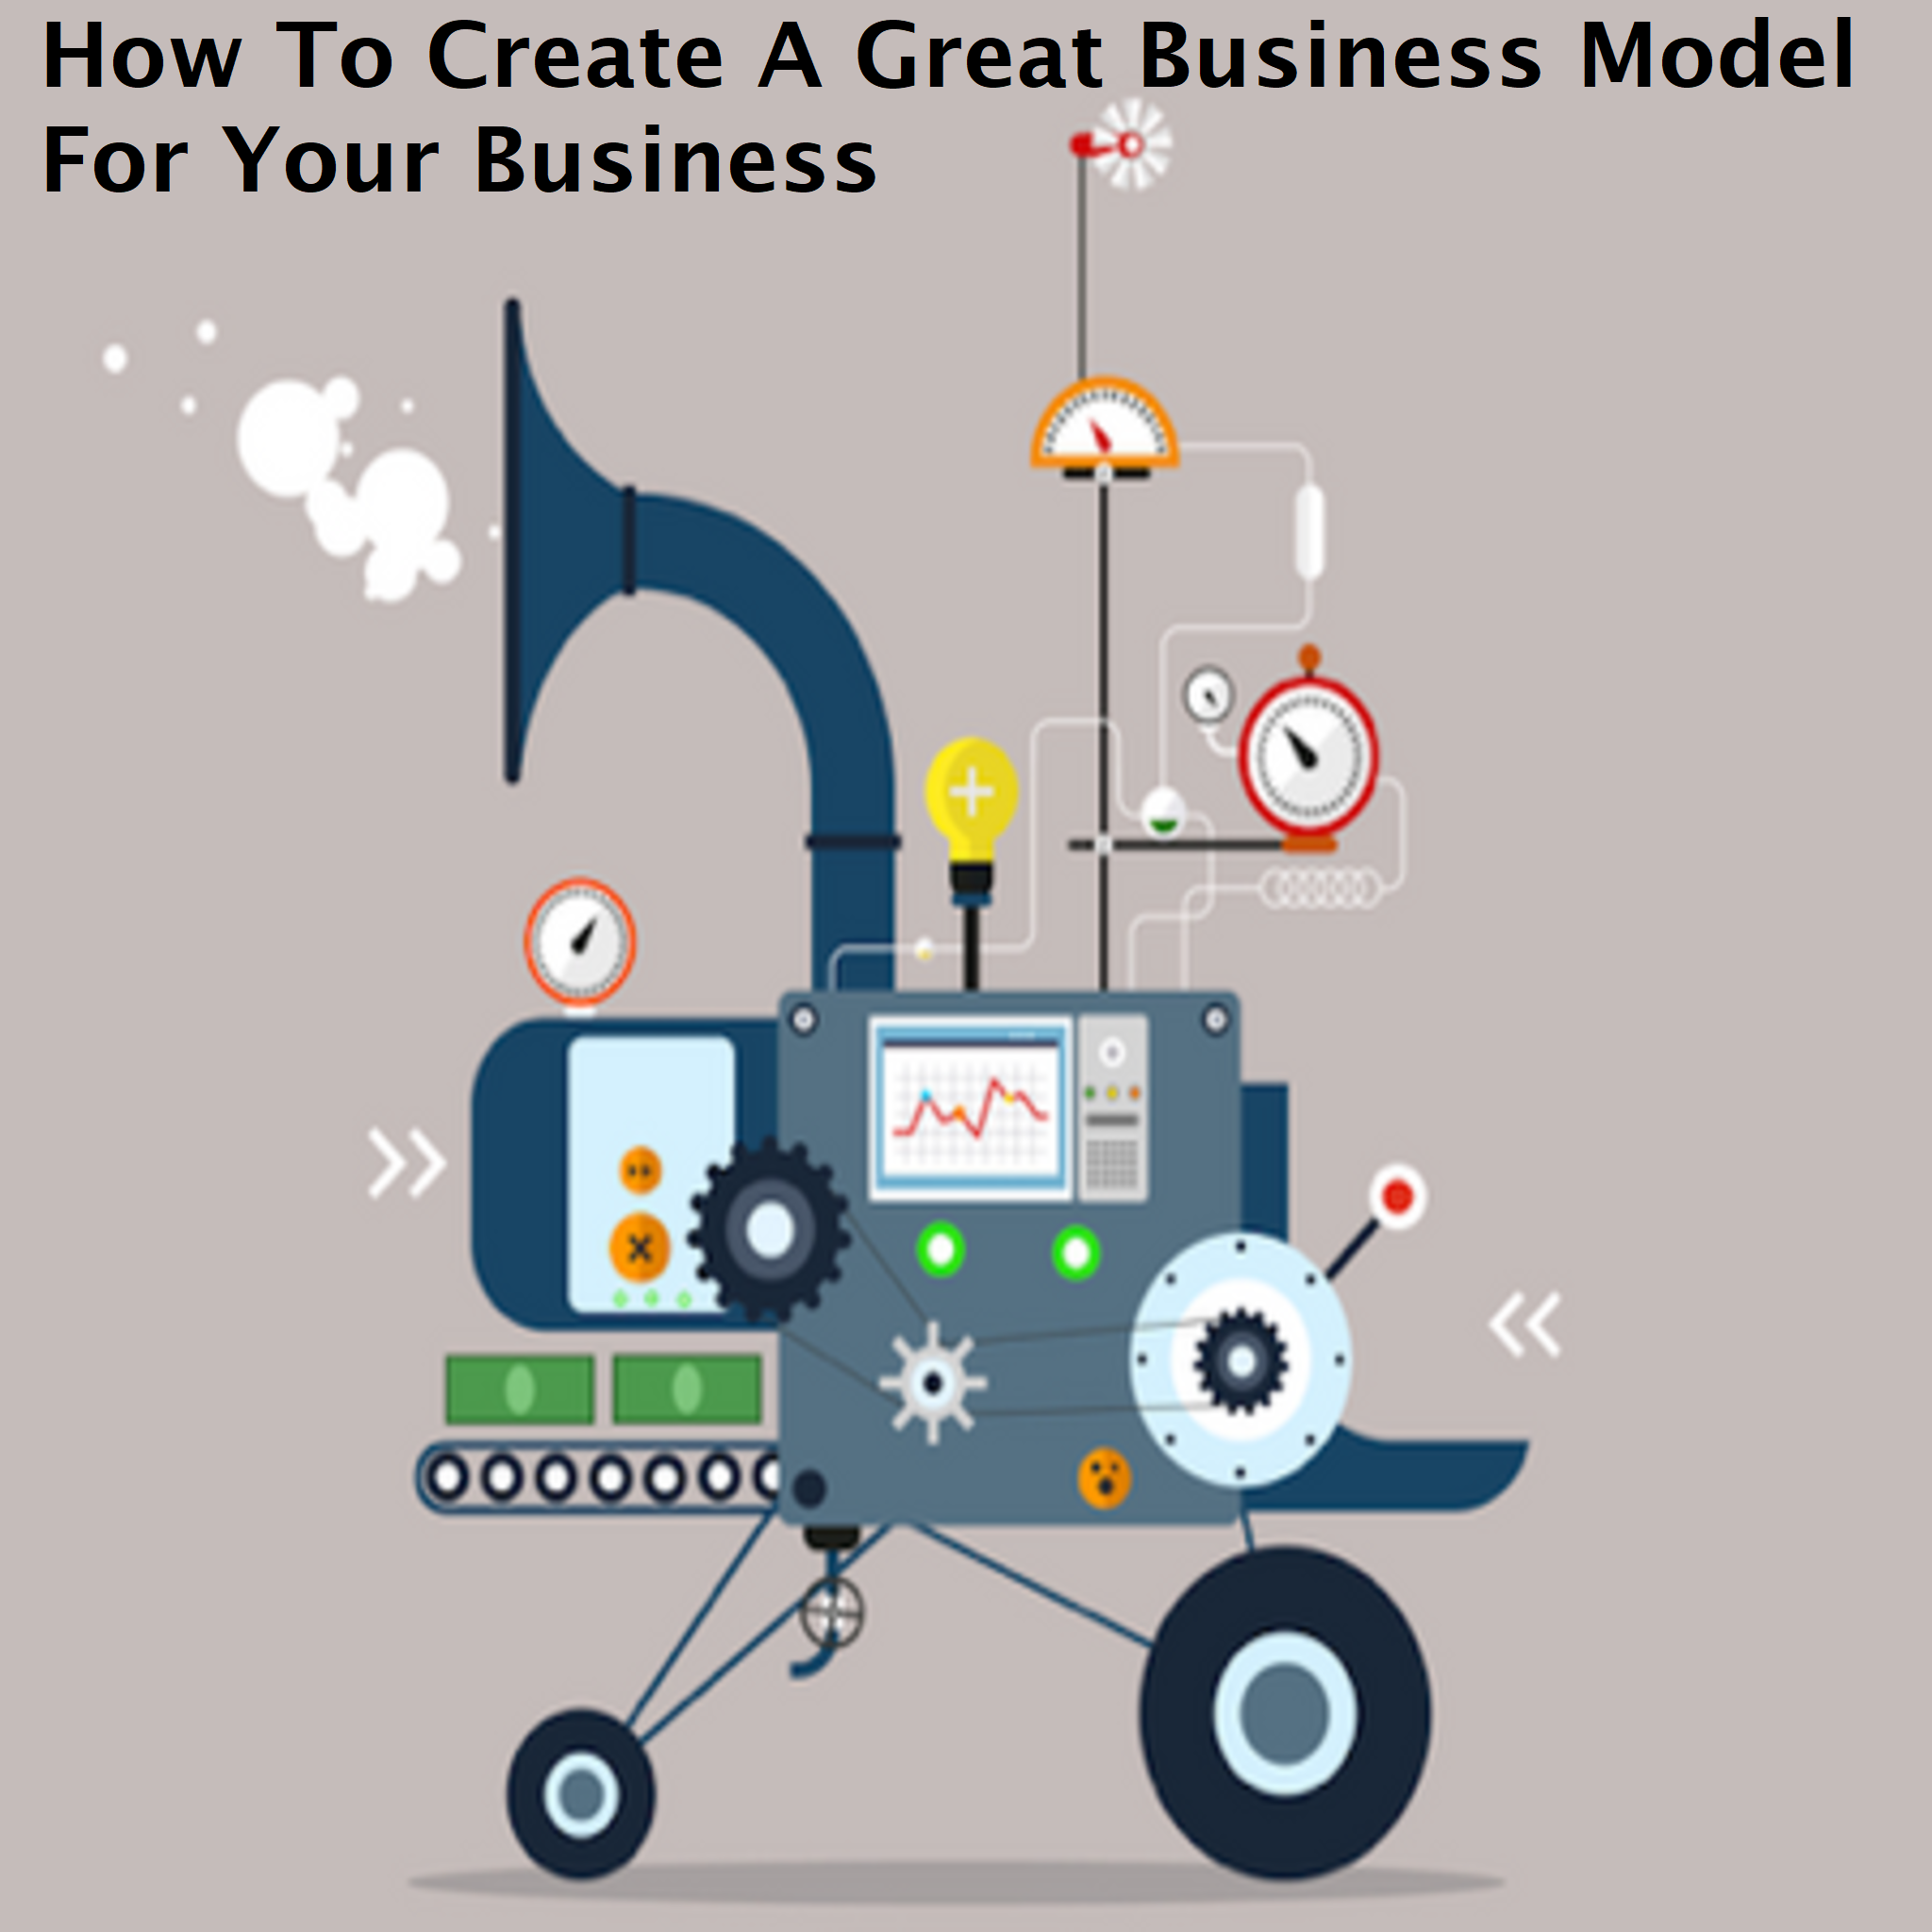 How To Create A Great Business Model For Your Business